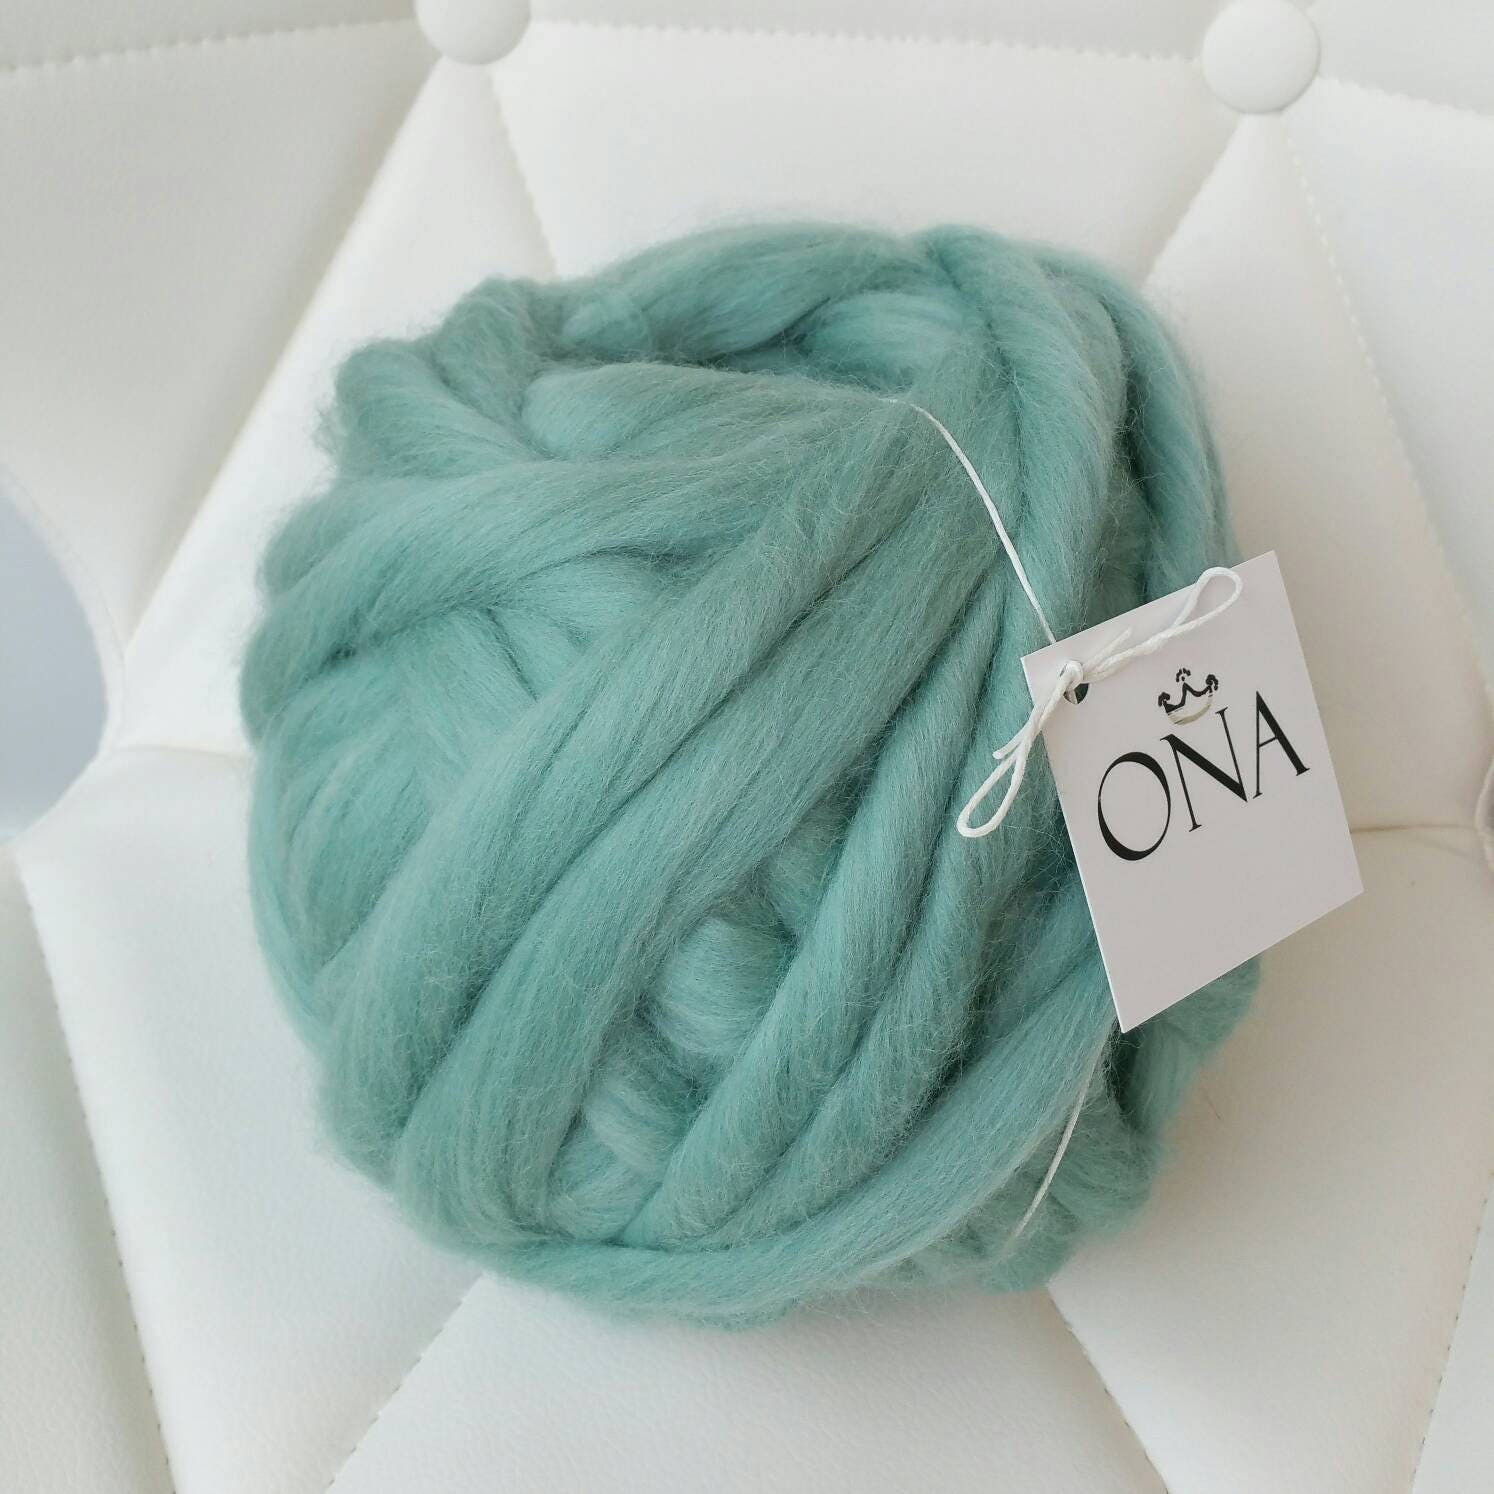 Xxl Knitting Yarn : Giant yarn g xxl chunky merino wool hand spun arm knitting